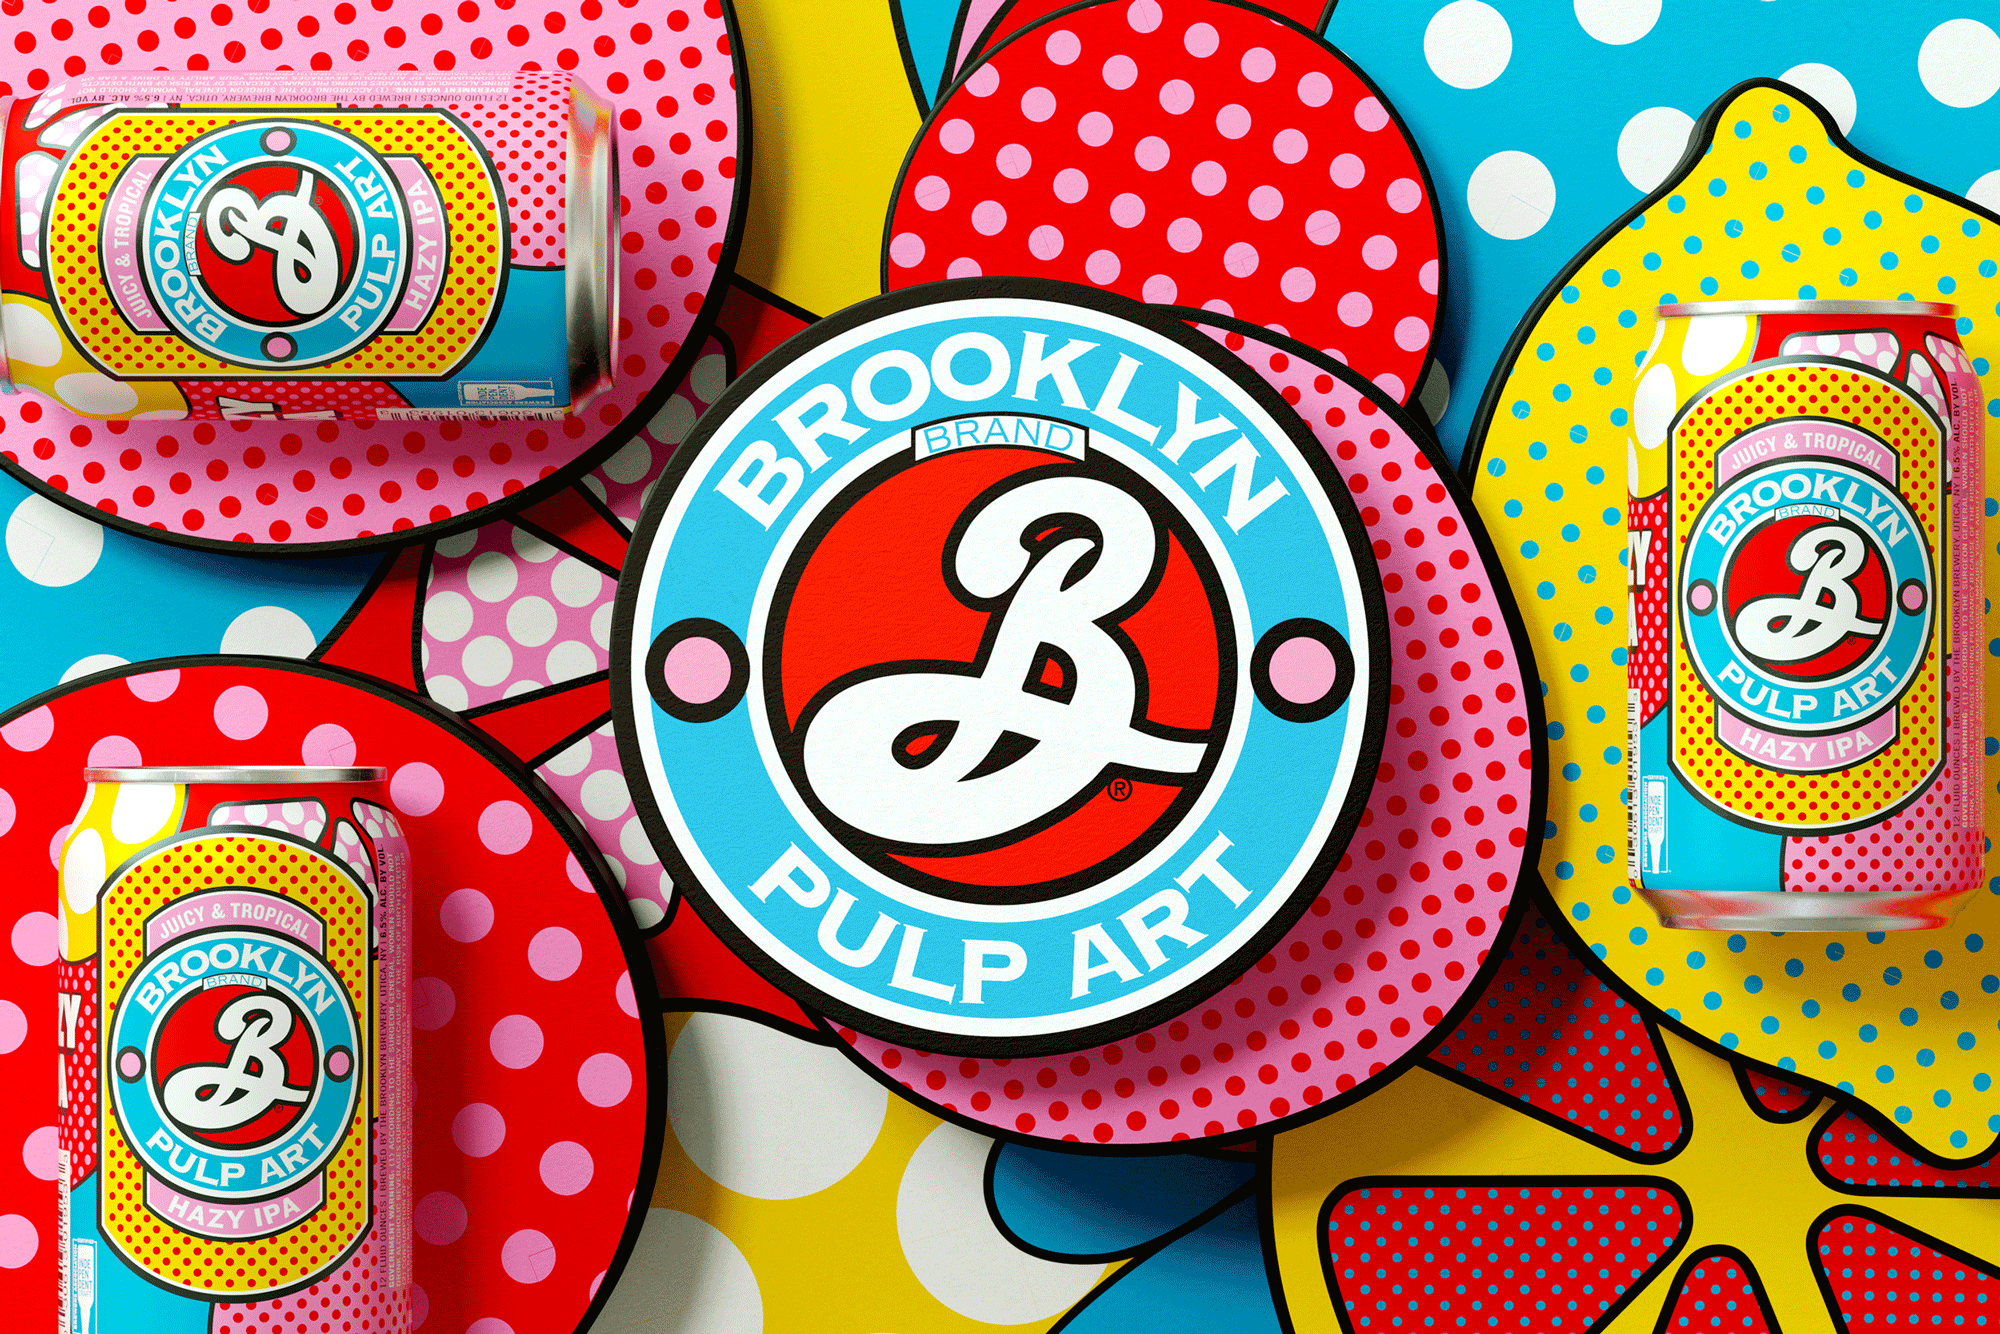 Brooklyn Brewery Pulp Art Hazy IPA Brand and Packaging Design by Thirst Craft